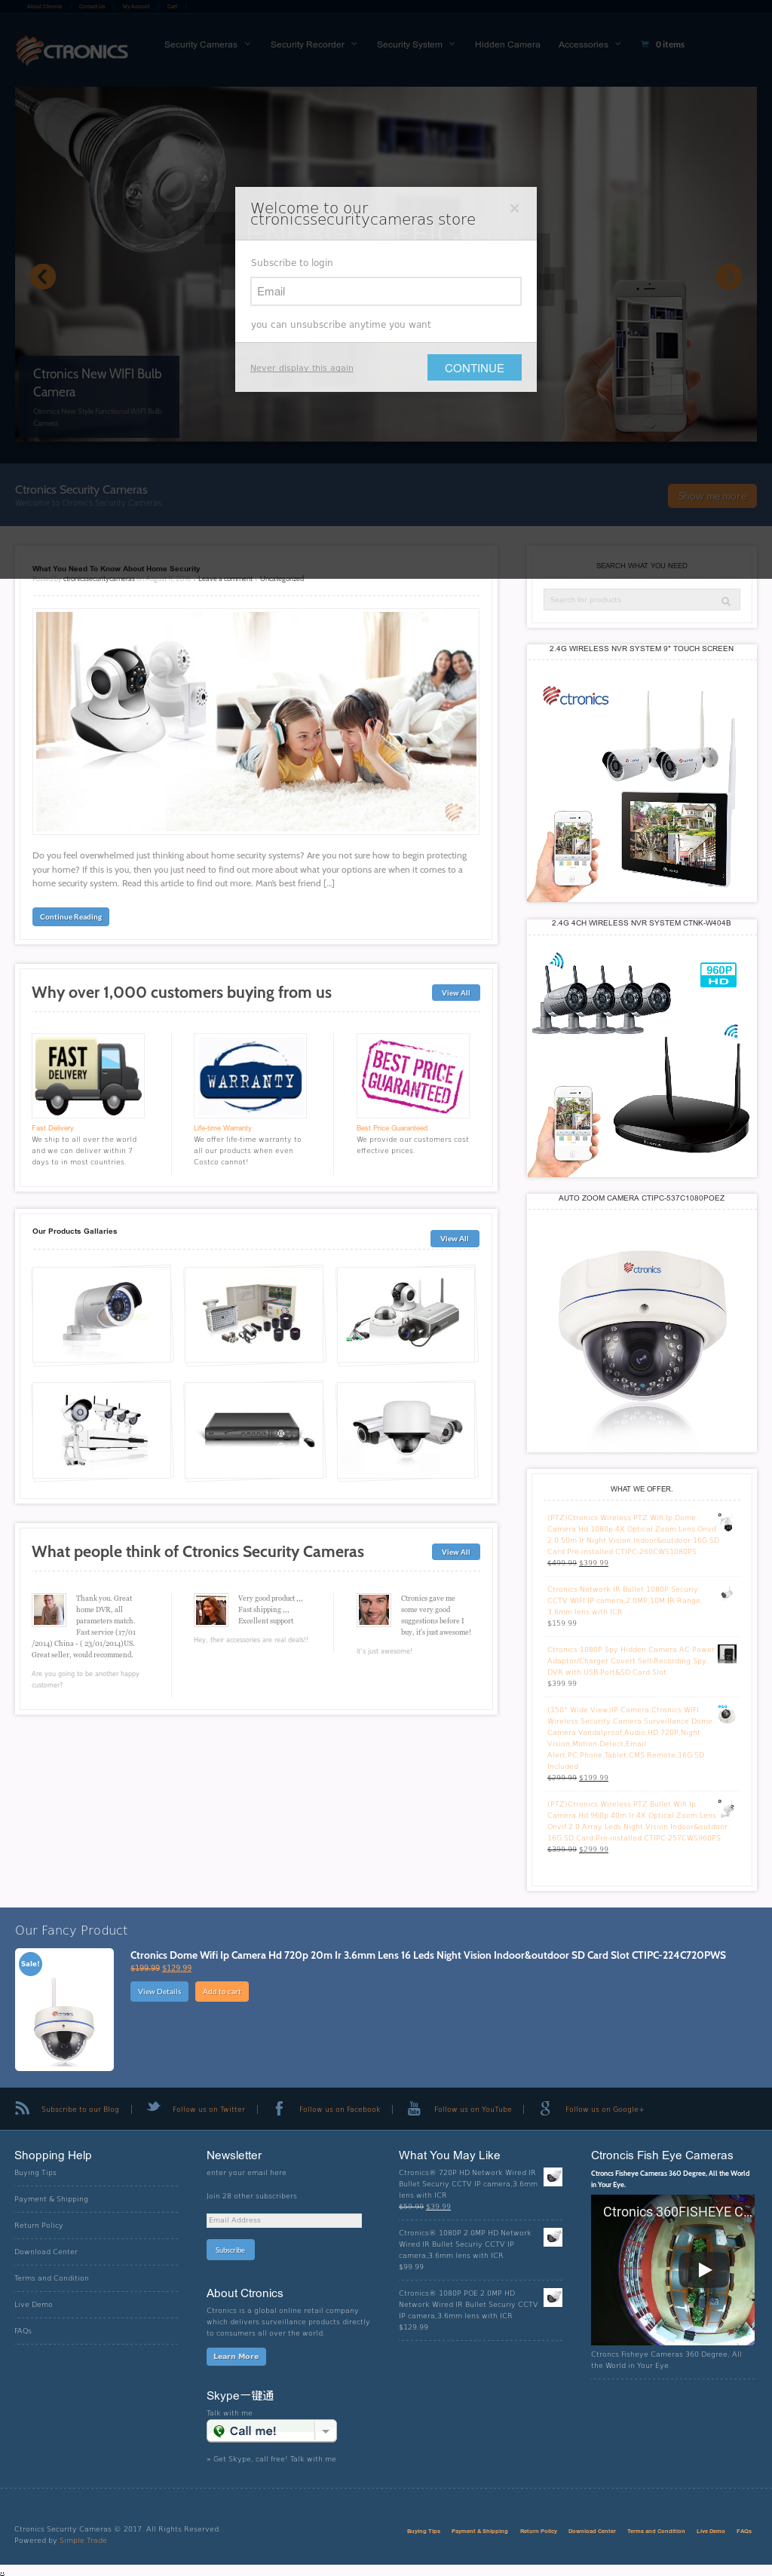 Ctronics Security Cameras Competitors, Revenue and Employees